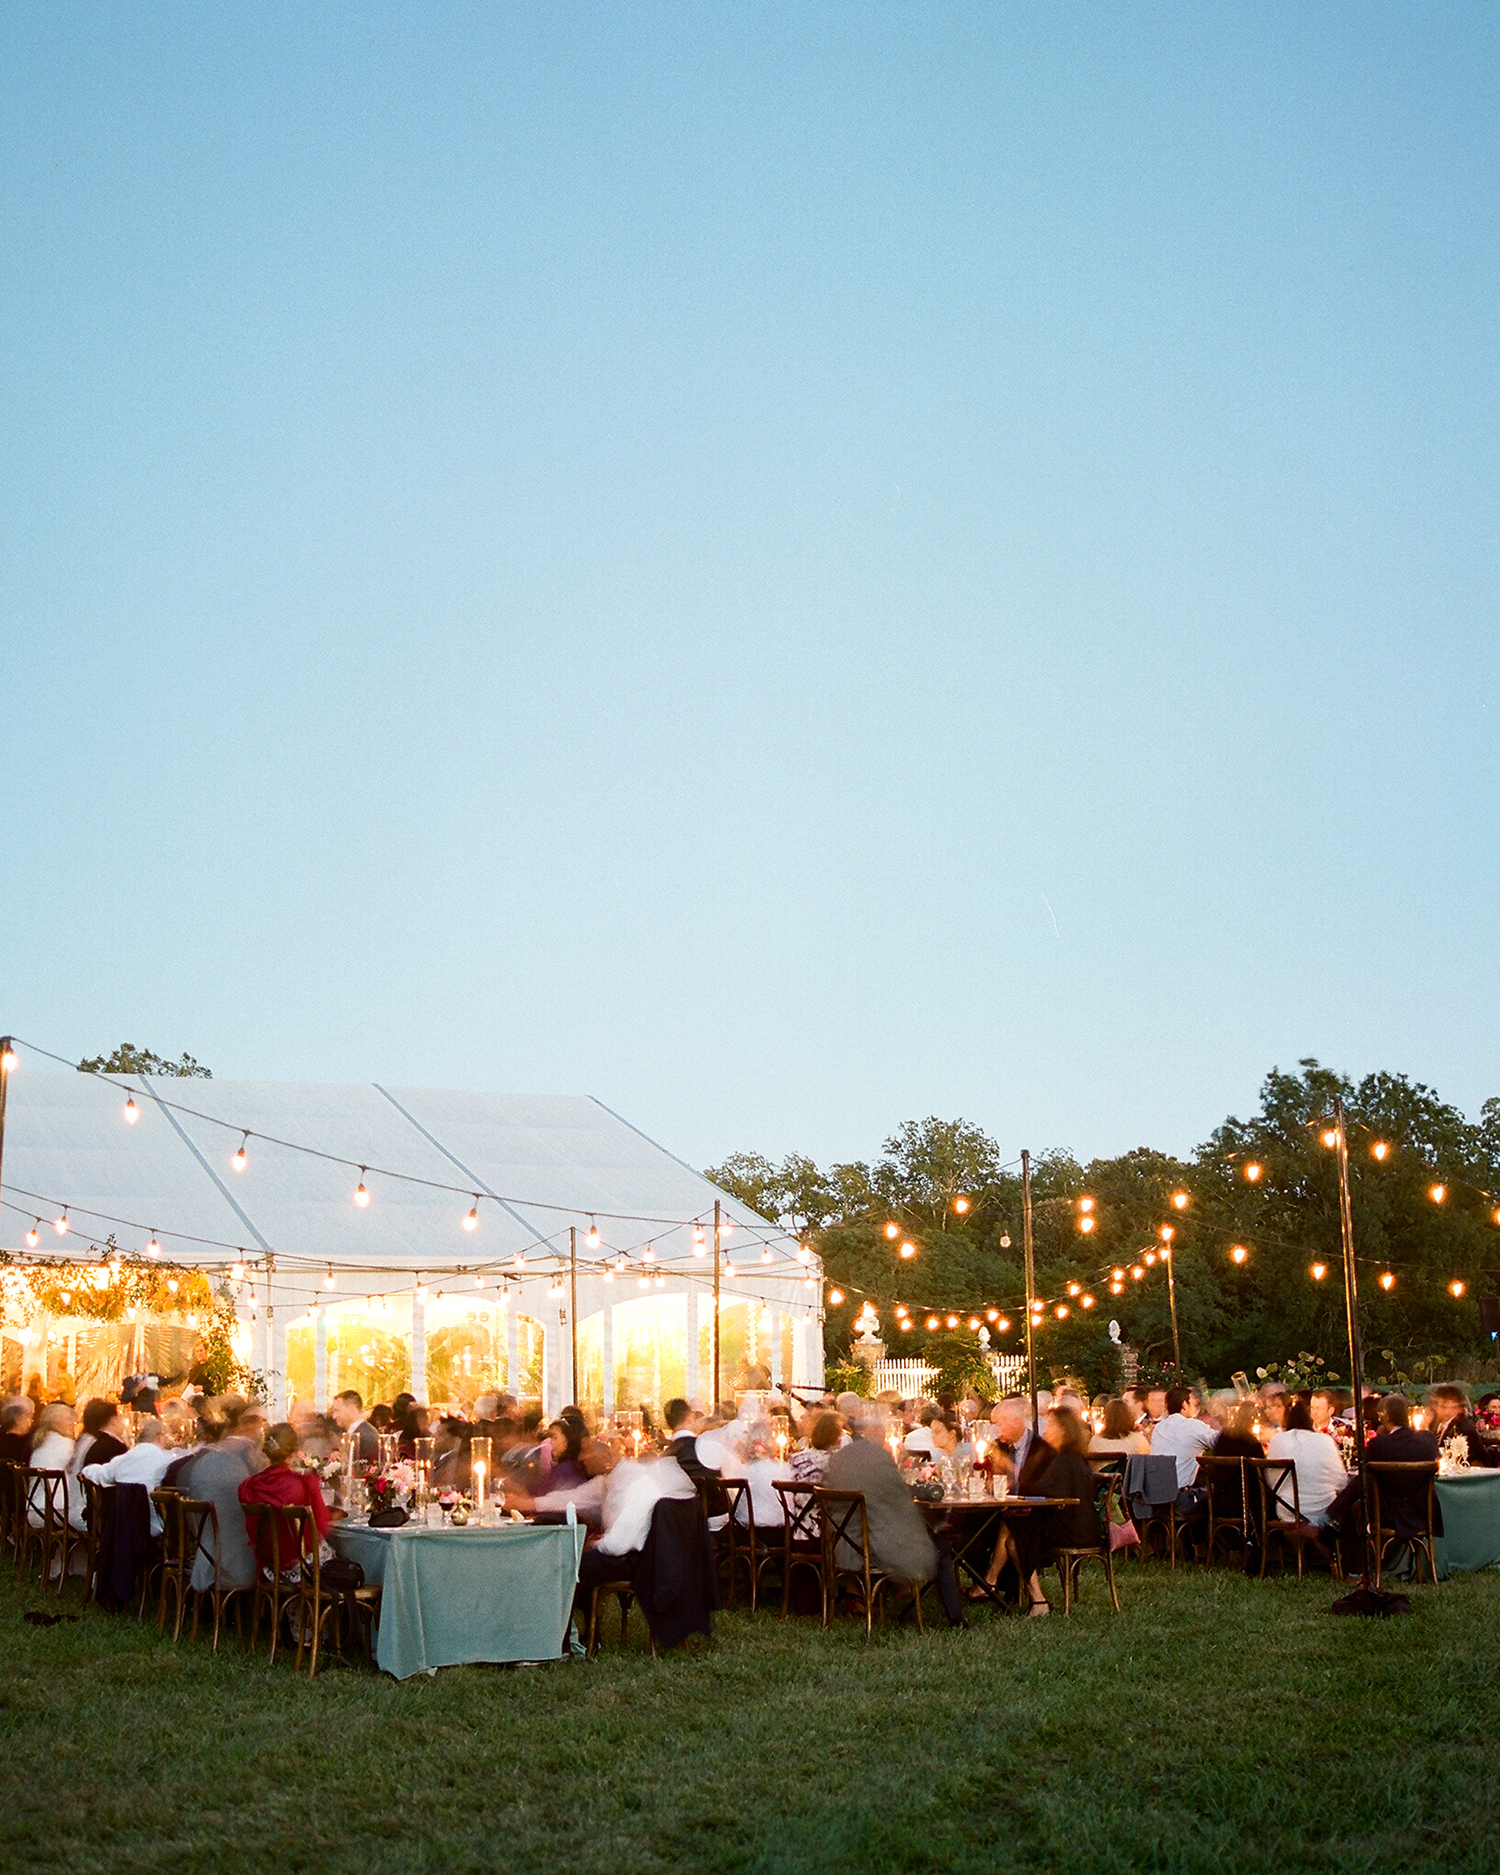 jen geoff wedding outdoor reception tent